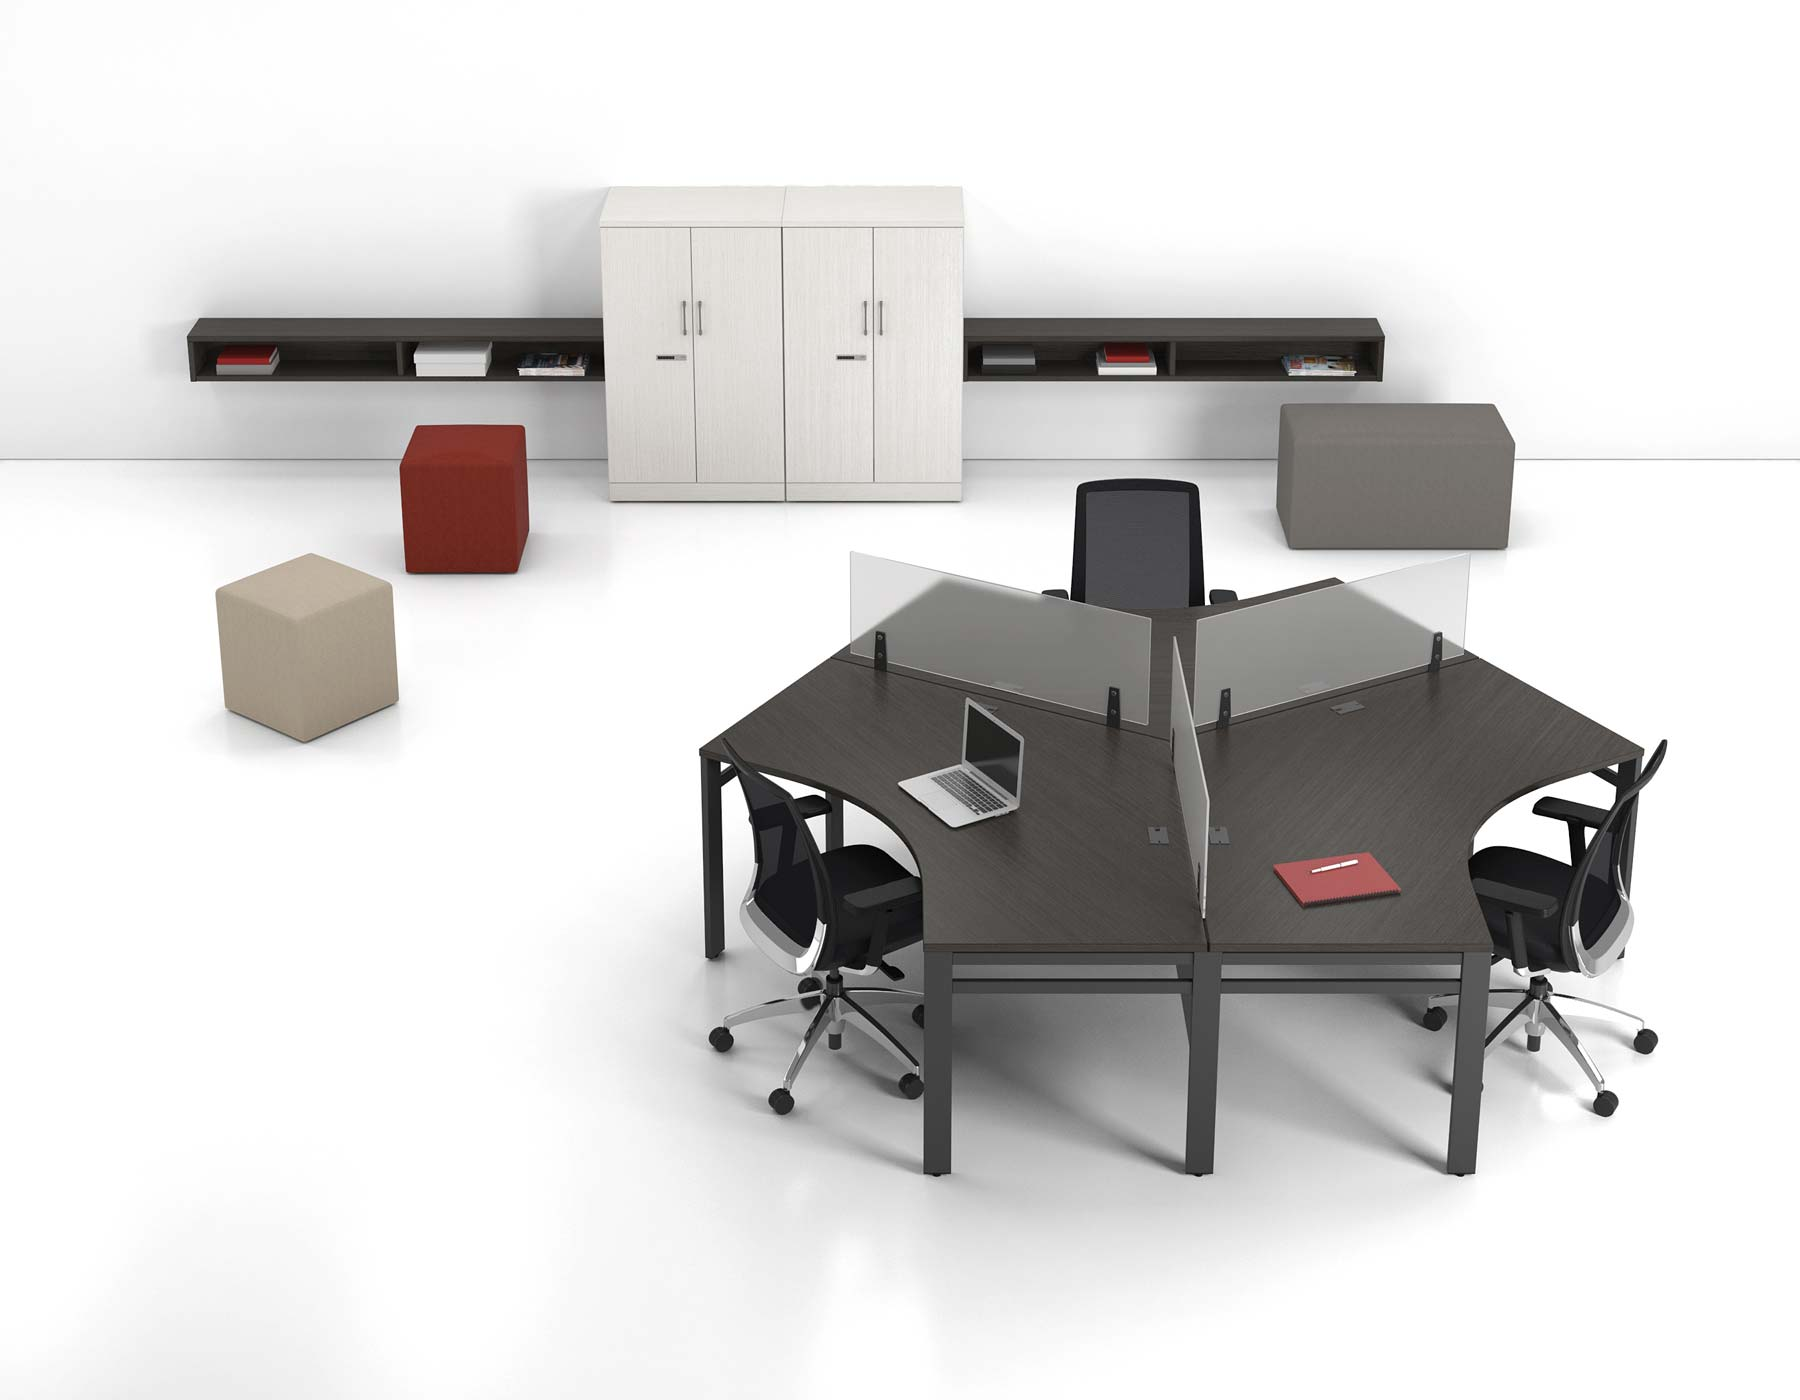 aurora office furniture interior design space planning alliance rh allianceinteriors ca Used Executive Office Furniture used office furniture mississauga ontario canada